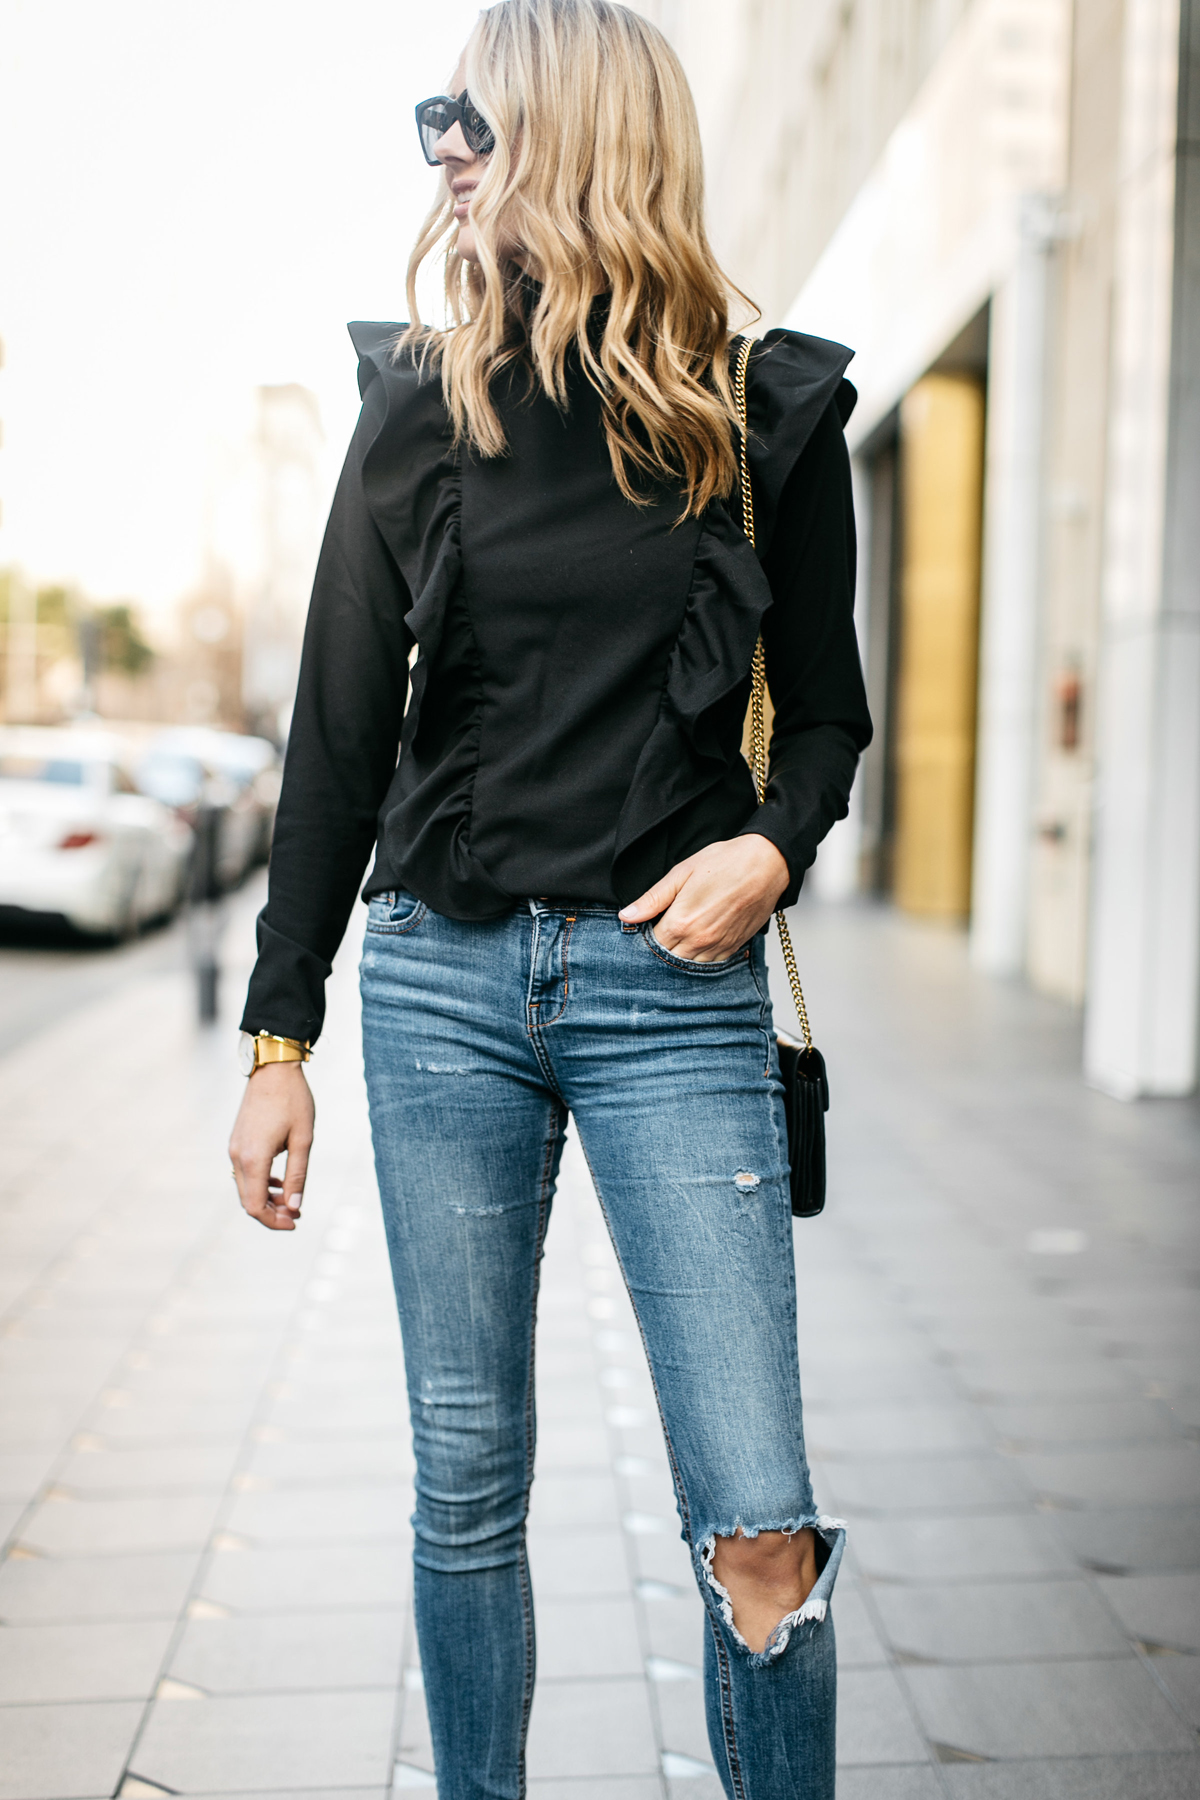 Fashion Jackson, Street Style, Black Long Sleeve Ruffle Top, Denim Ripped Skinny Jeans